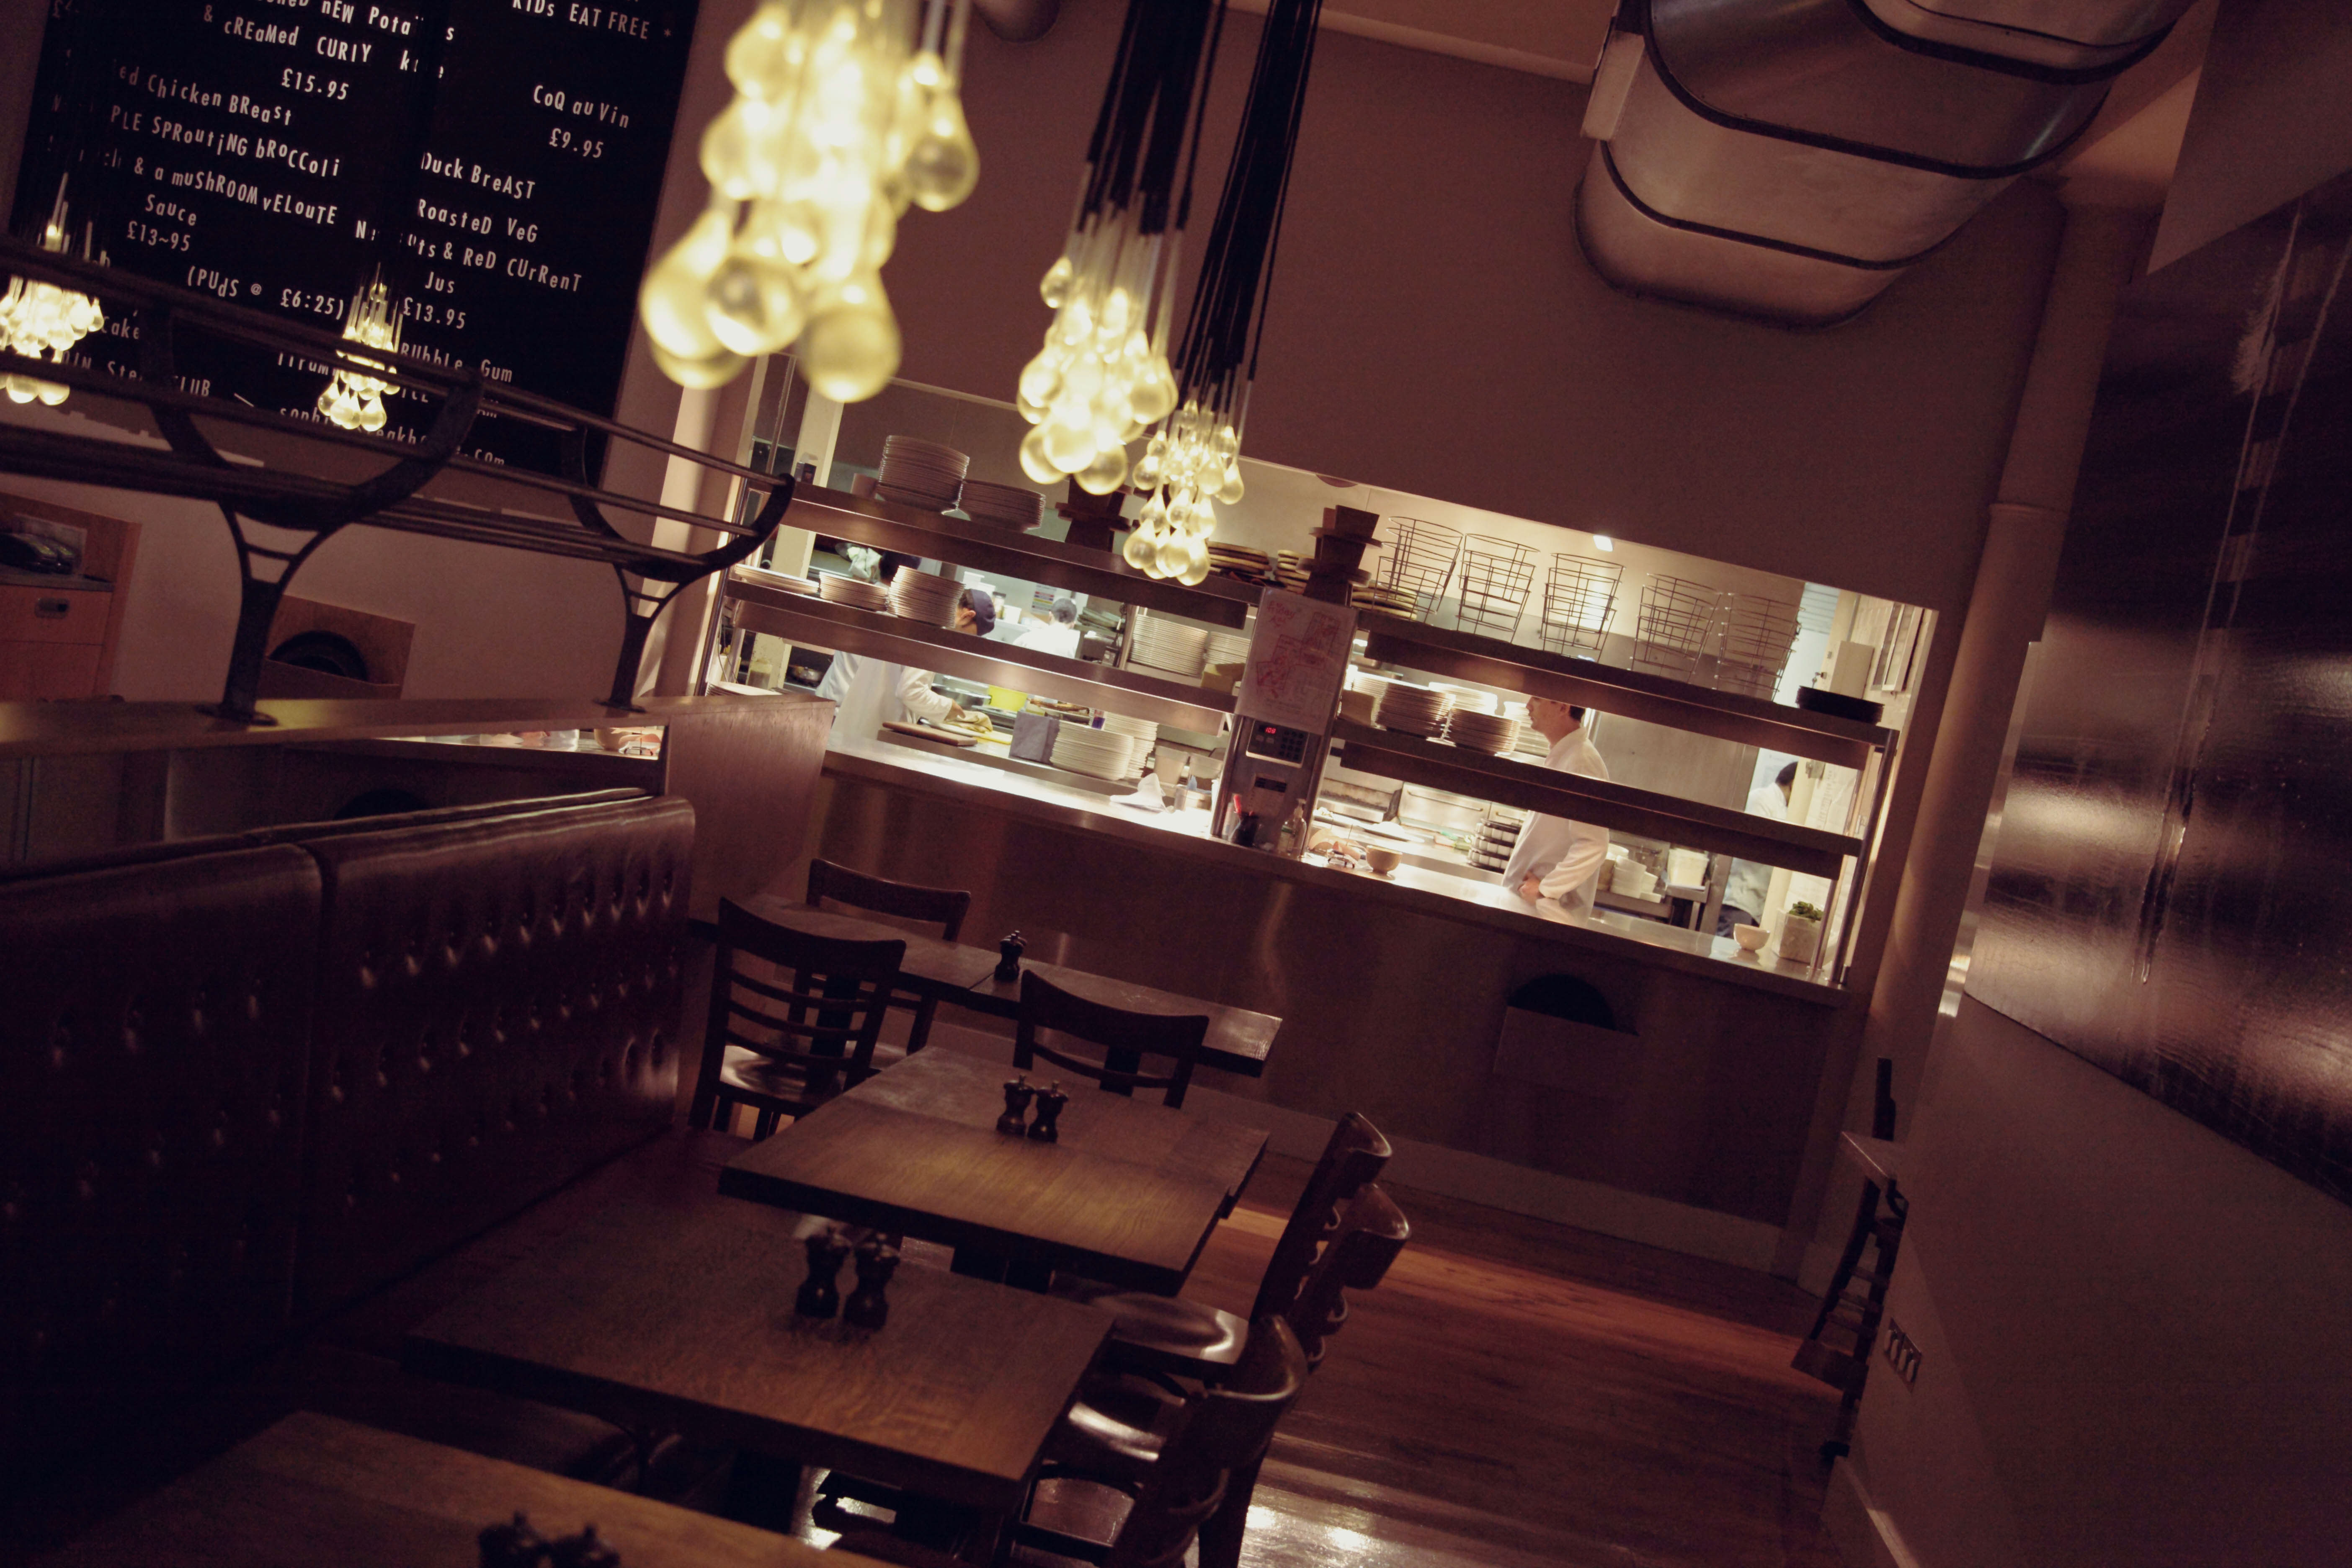 Reserve a table at Sophie's Steakhouse and Bar - Covent Garden